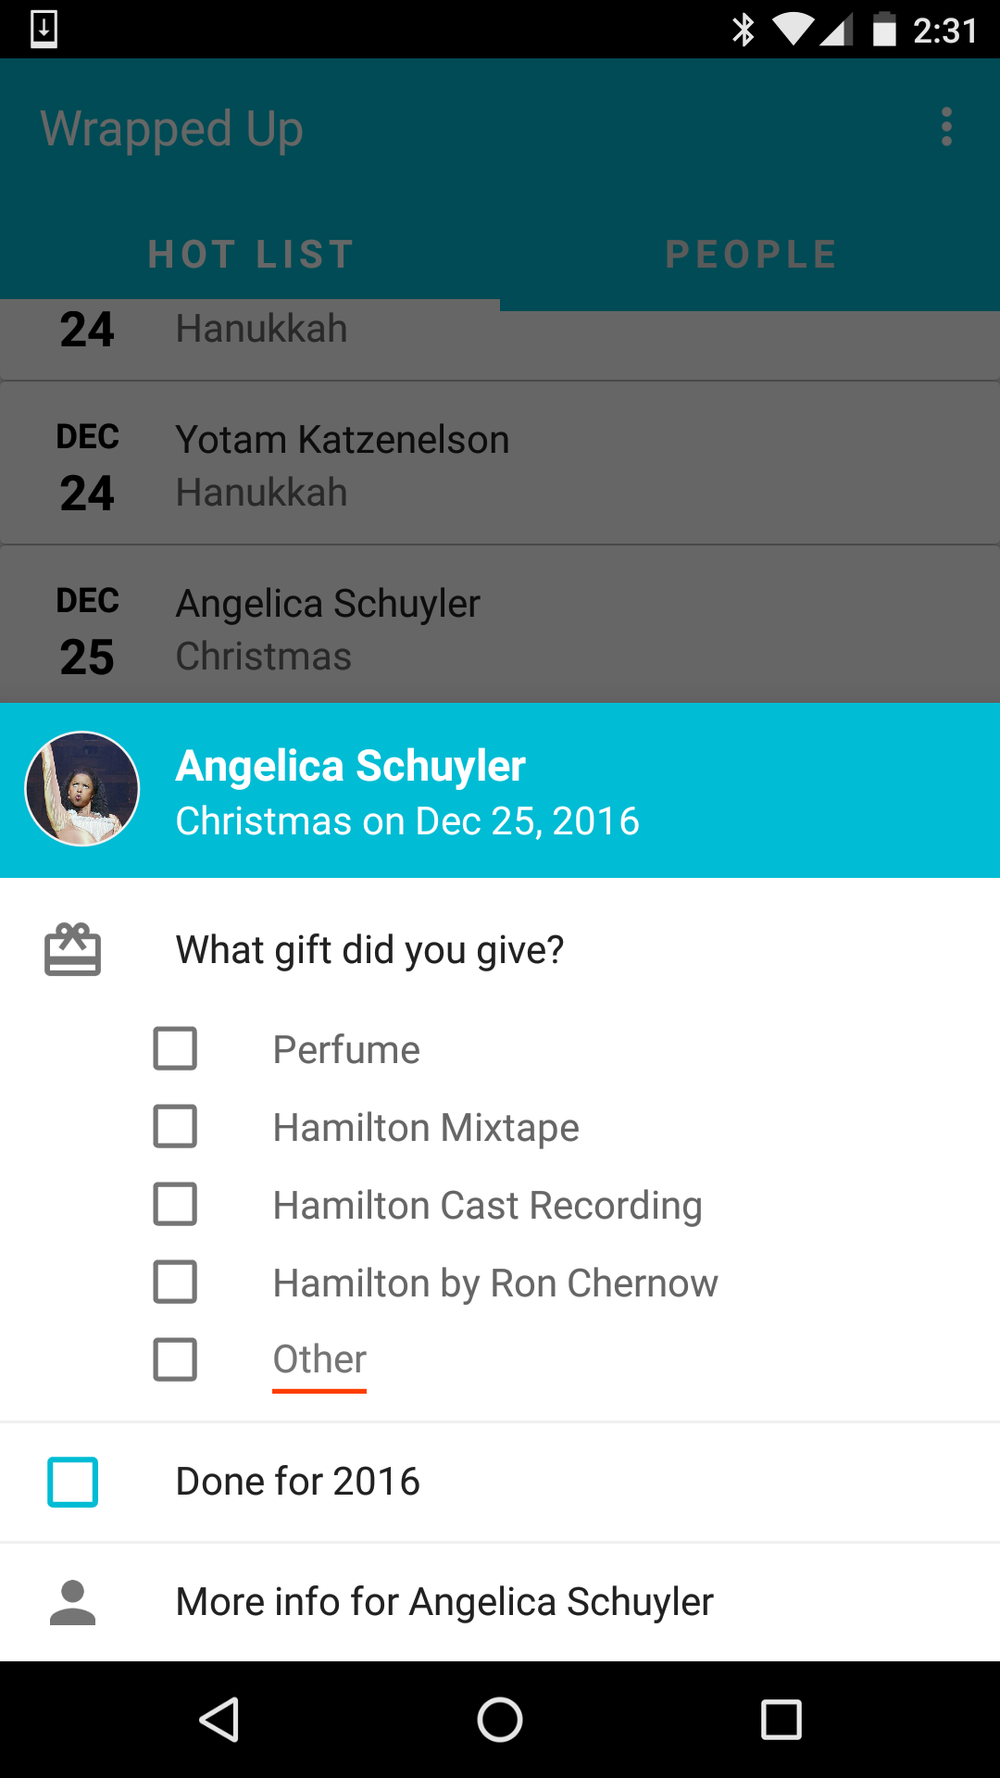 Viewing the quick info sheet for Angelica Schuyler, who celebrates Christmas on December 25, 2016